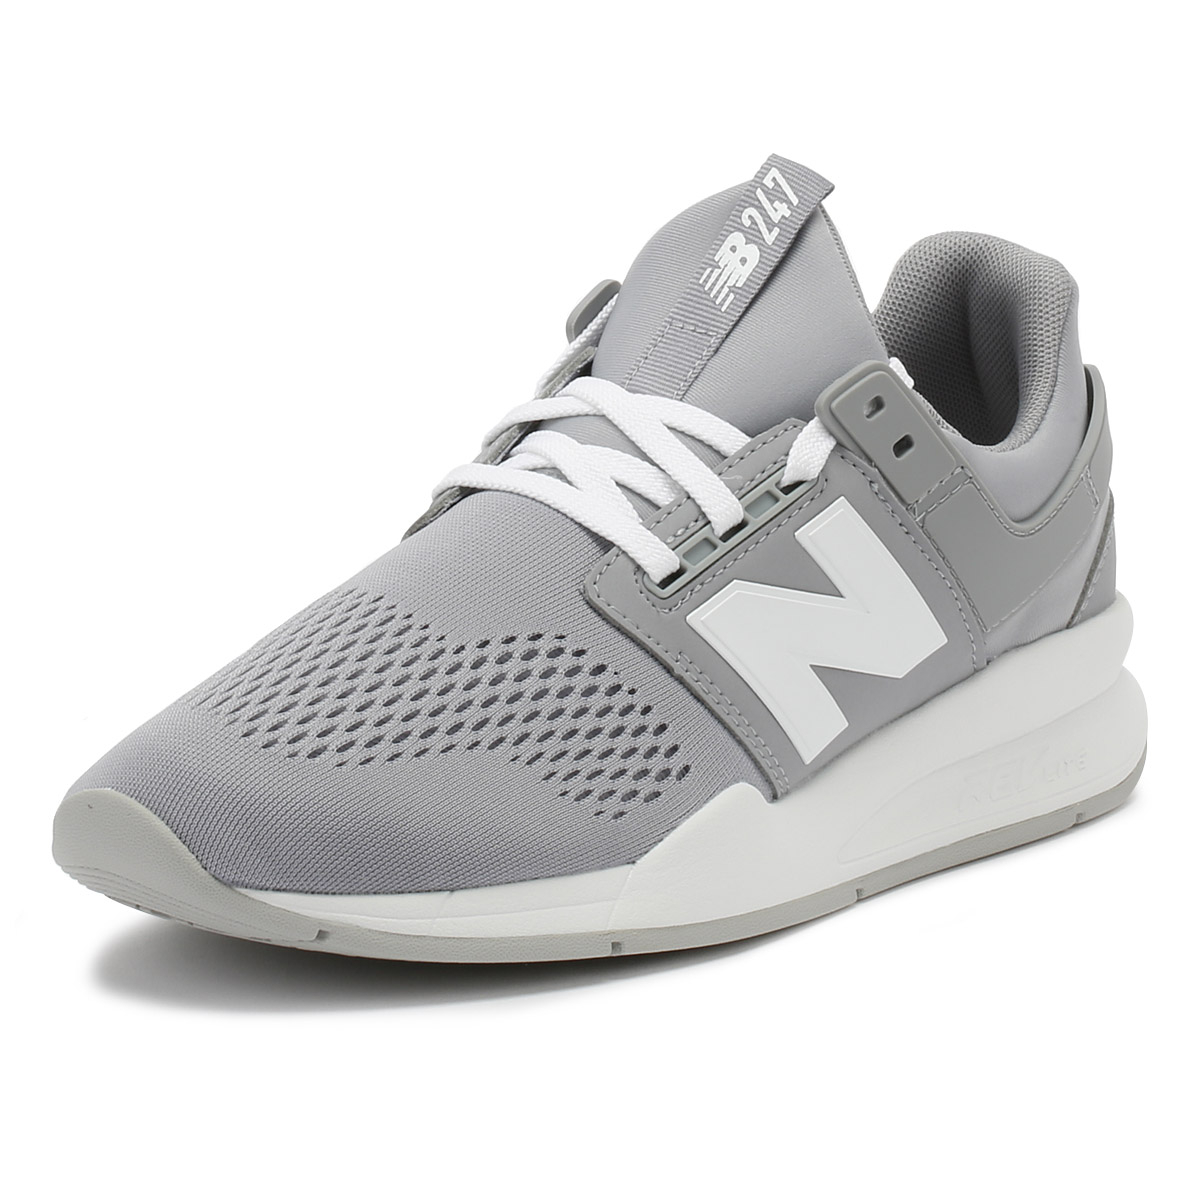 cbe35c6beaebd New Balance Womens Trainers Arctic Sky Grey & White 247 Sport Casual Shoes